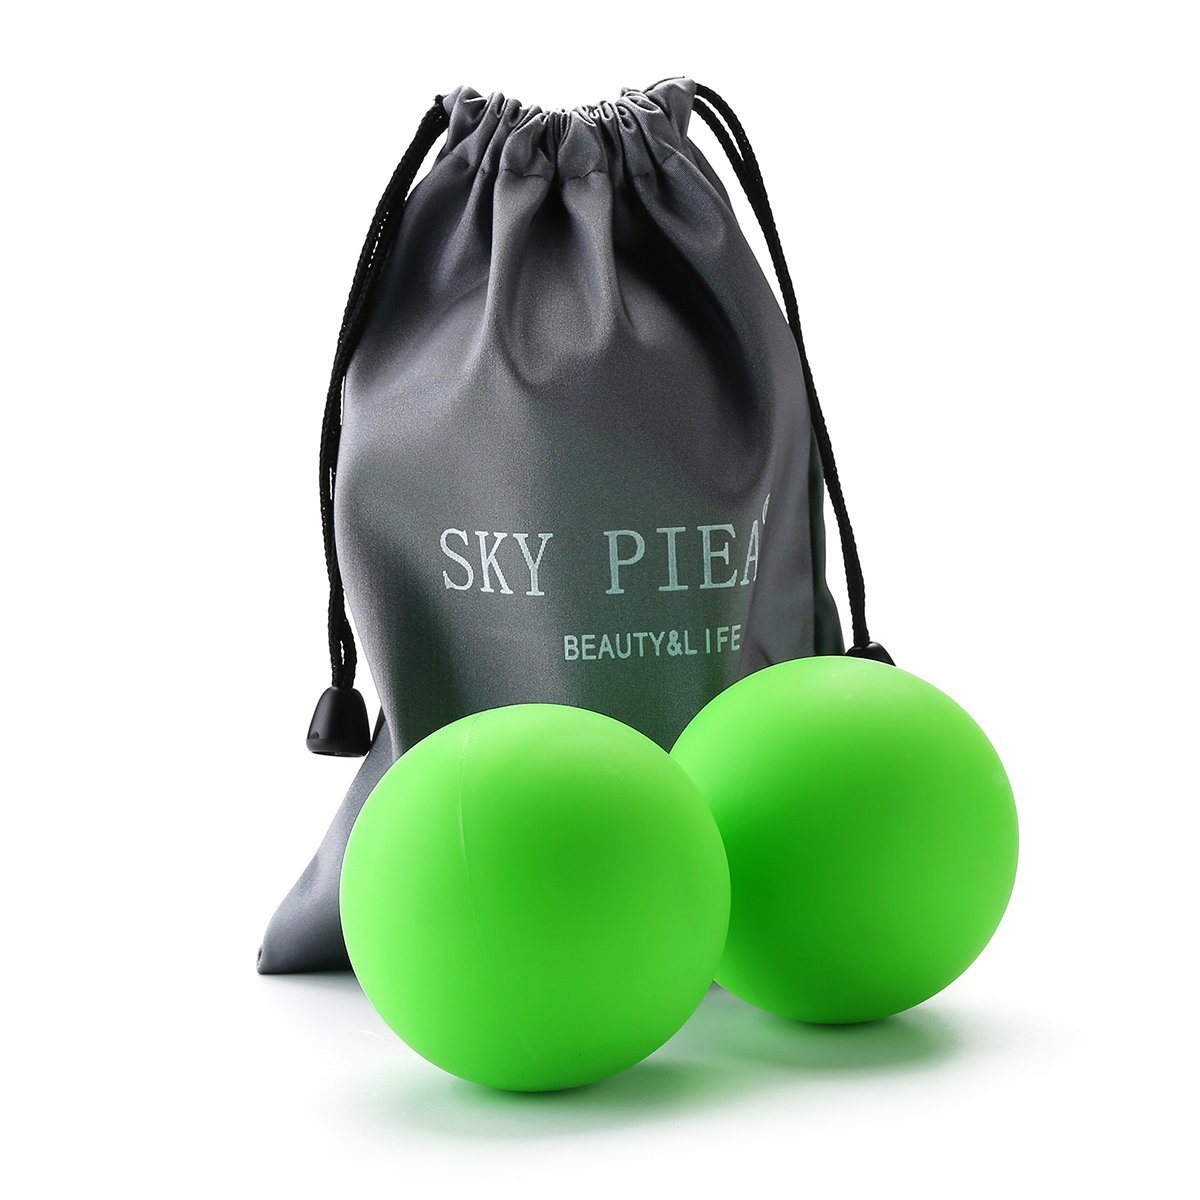 Massage Therapy Balls by Sky Piea, Deep Tissue Trigger Point, Foot Massager, Mobility, Plantar Fasciitis, Reflexology, Sore Muscles Relief Relax Medium Firm Rubber Balls, Set of 2